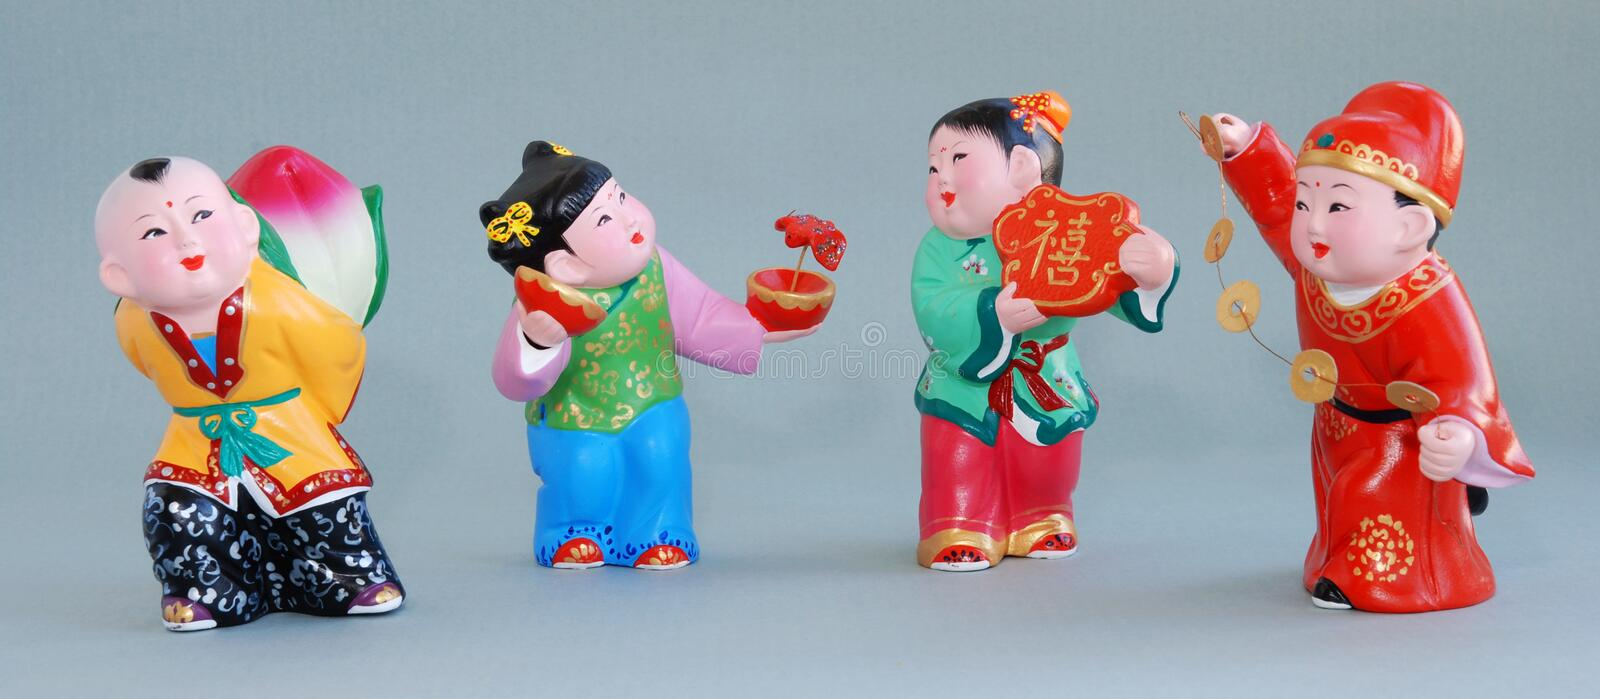 Chinese lucky clay figurine_all the best royalty free stock images